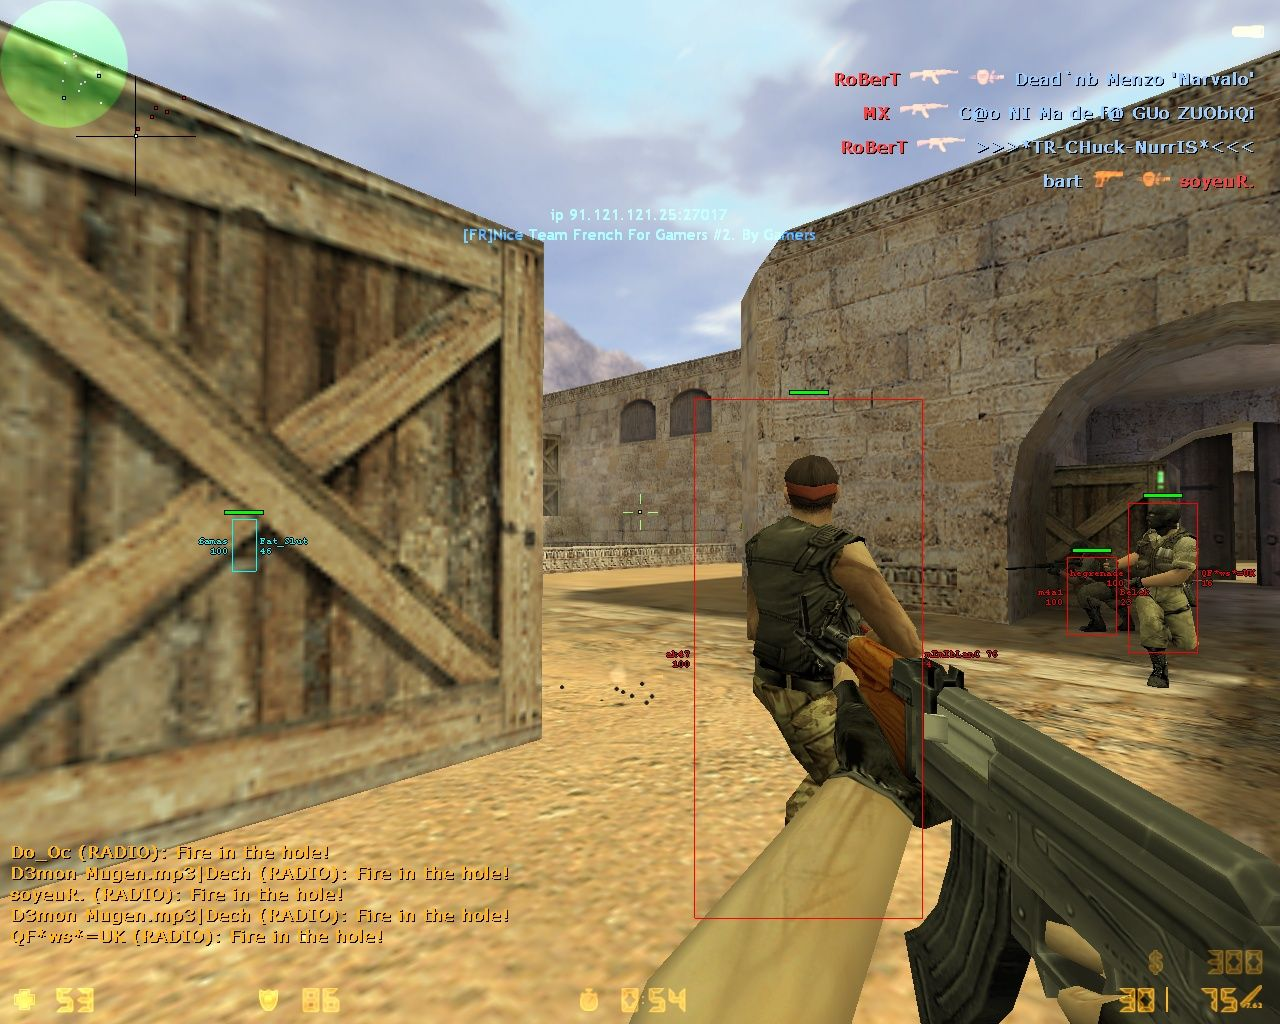 cs go aimbot download now for free | black ops 2 cheats